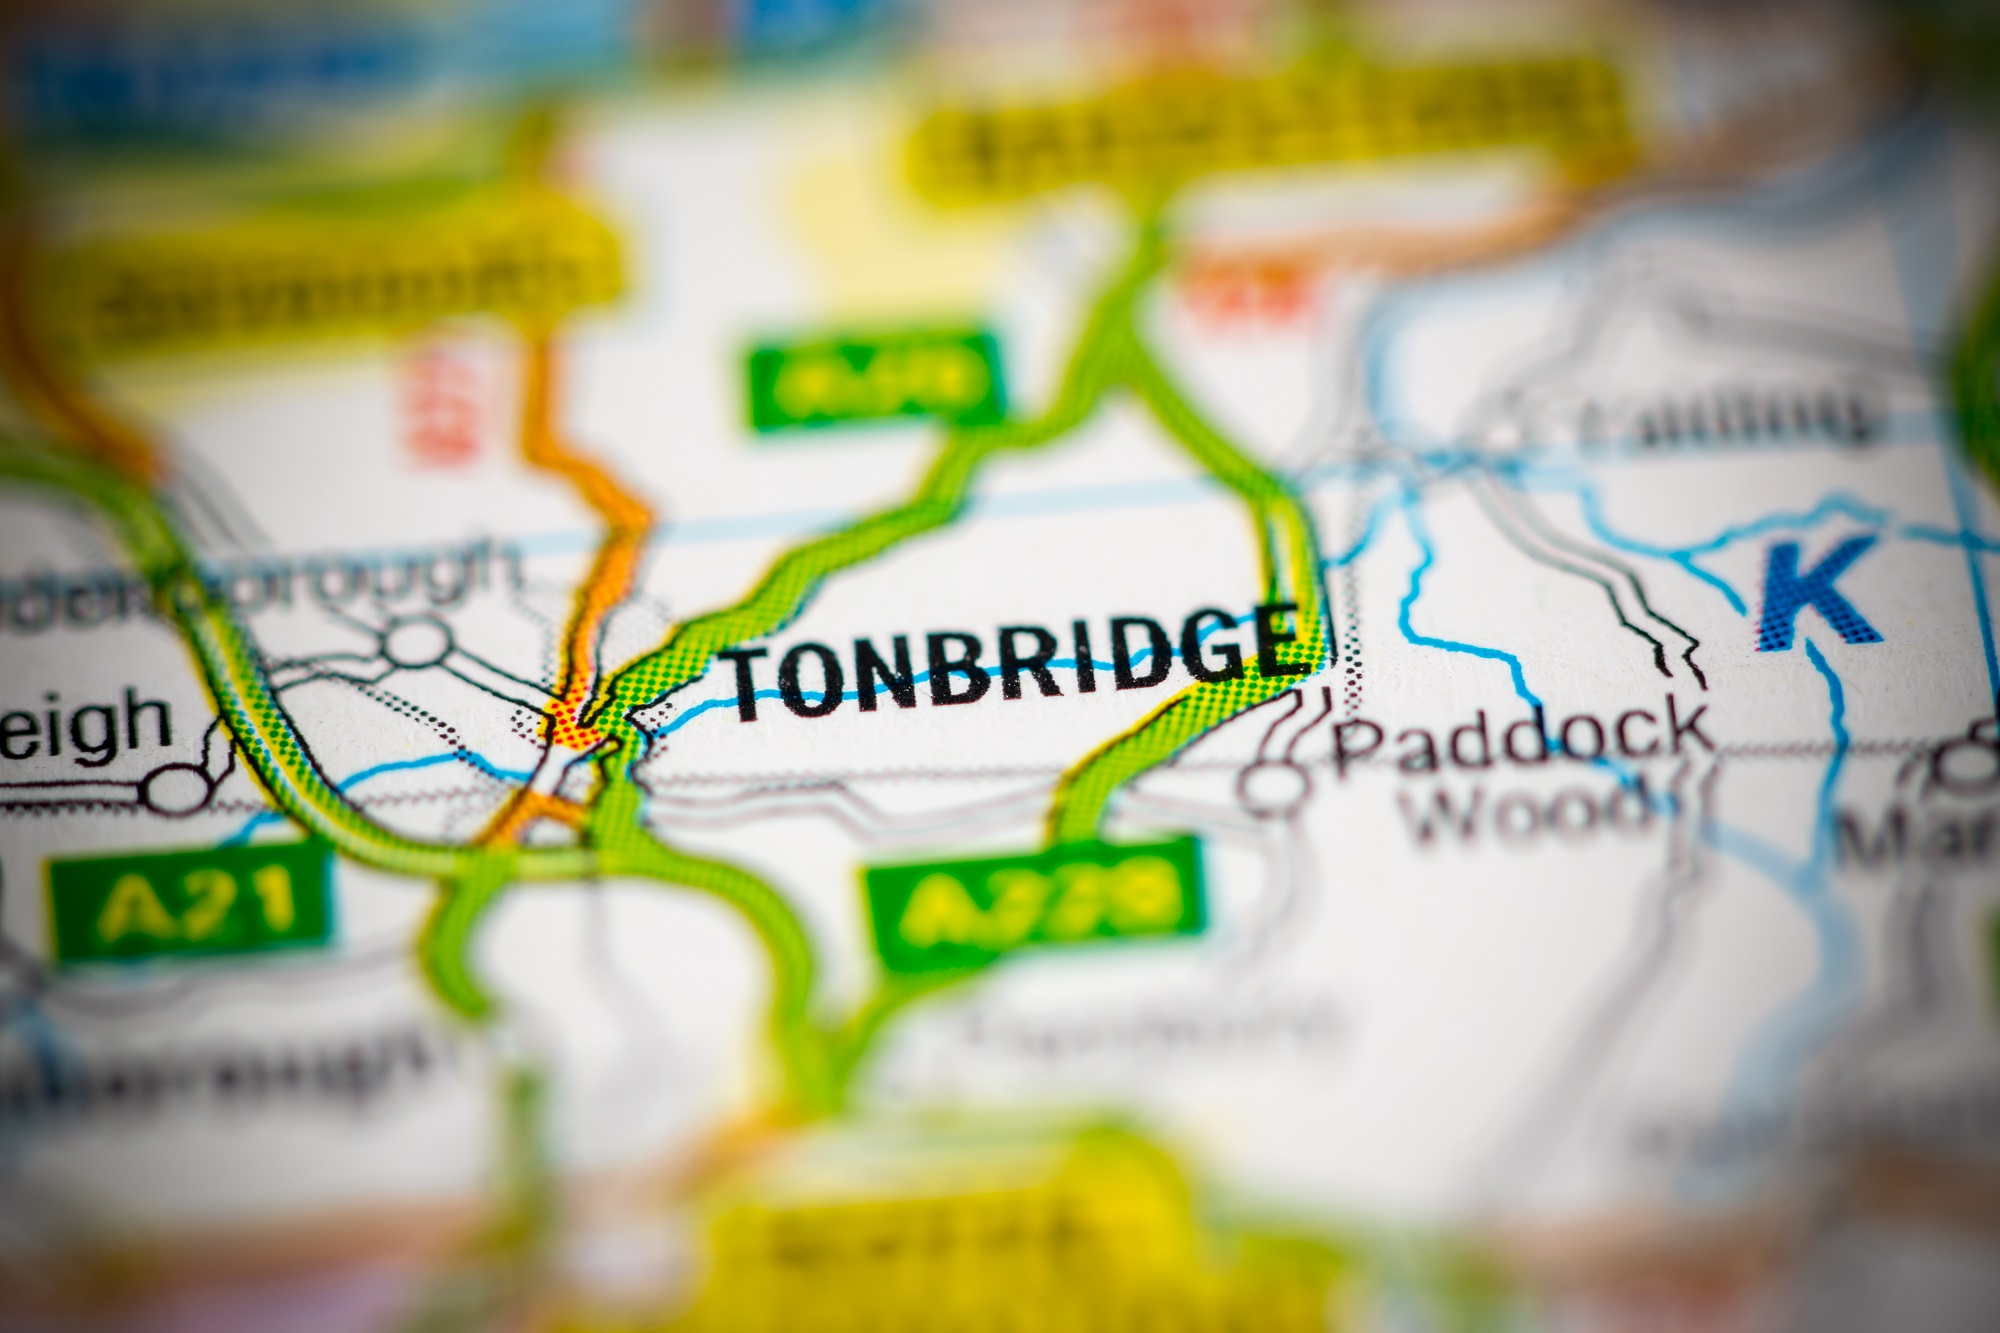 Everything you need to know about living in Tonbridge